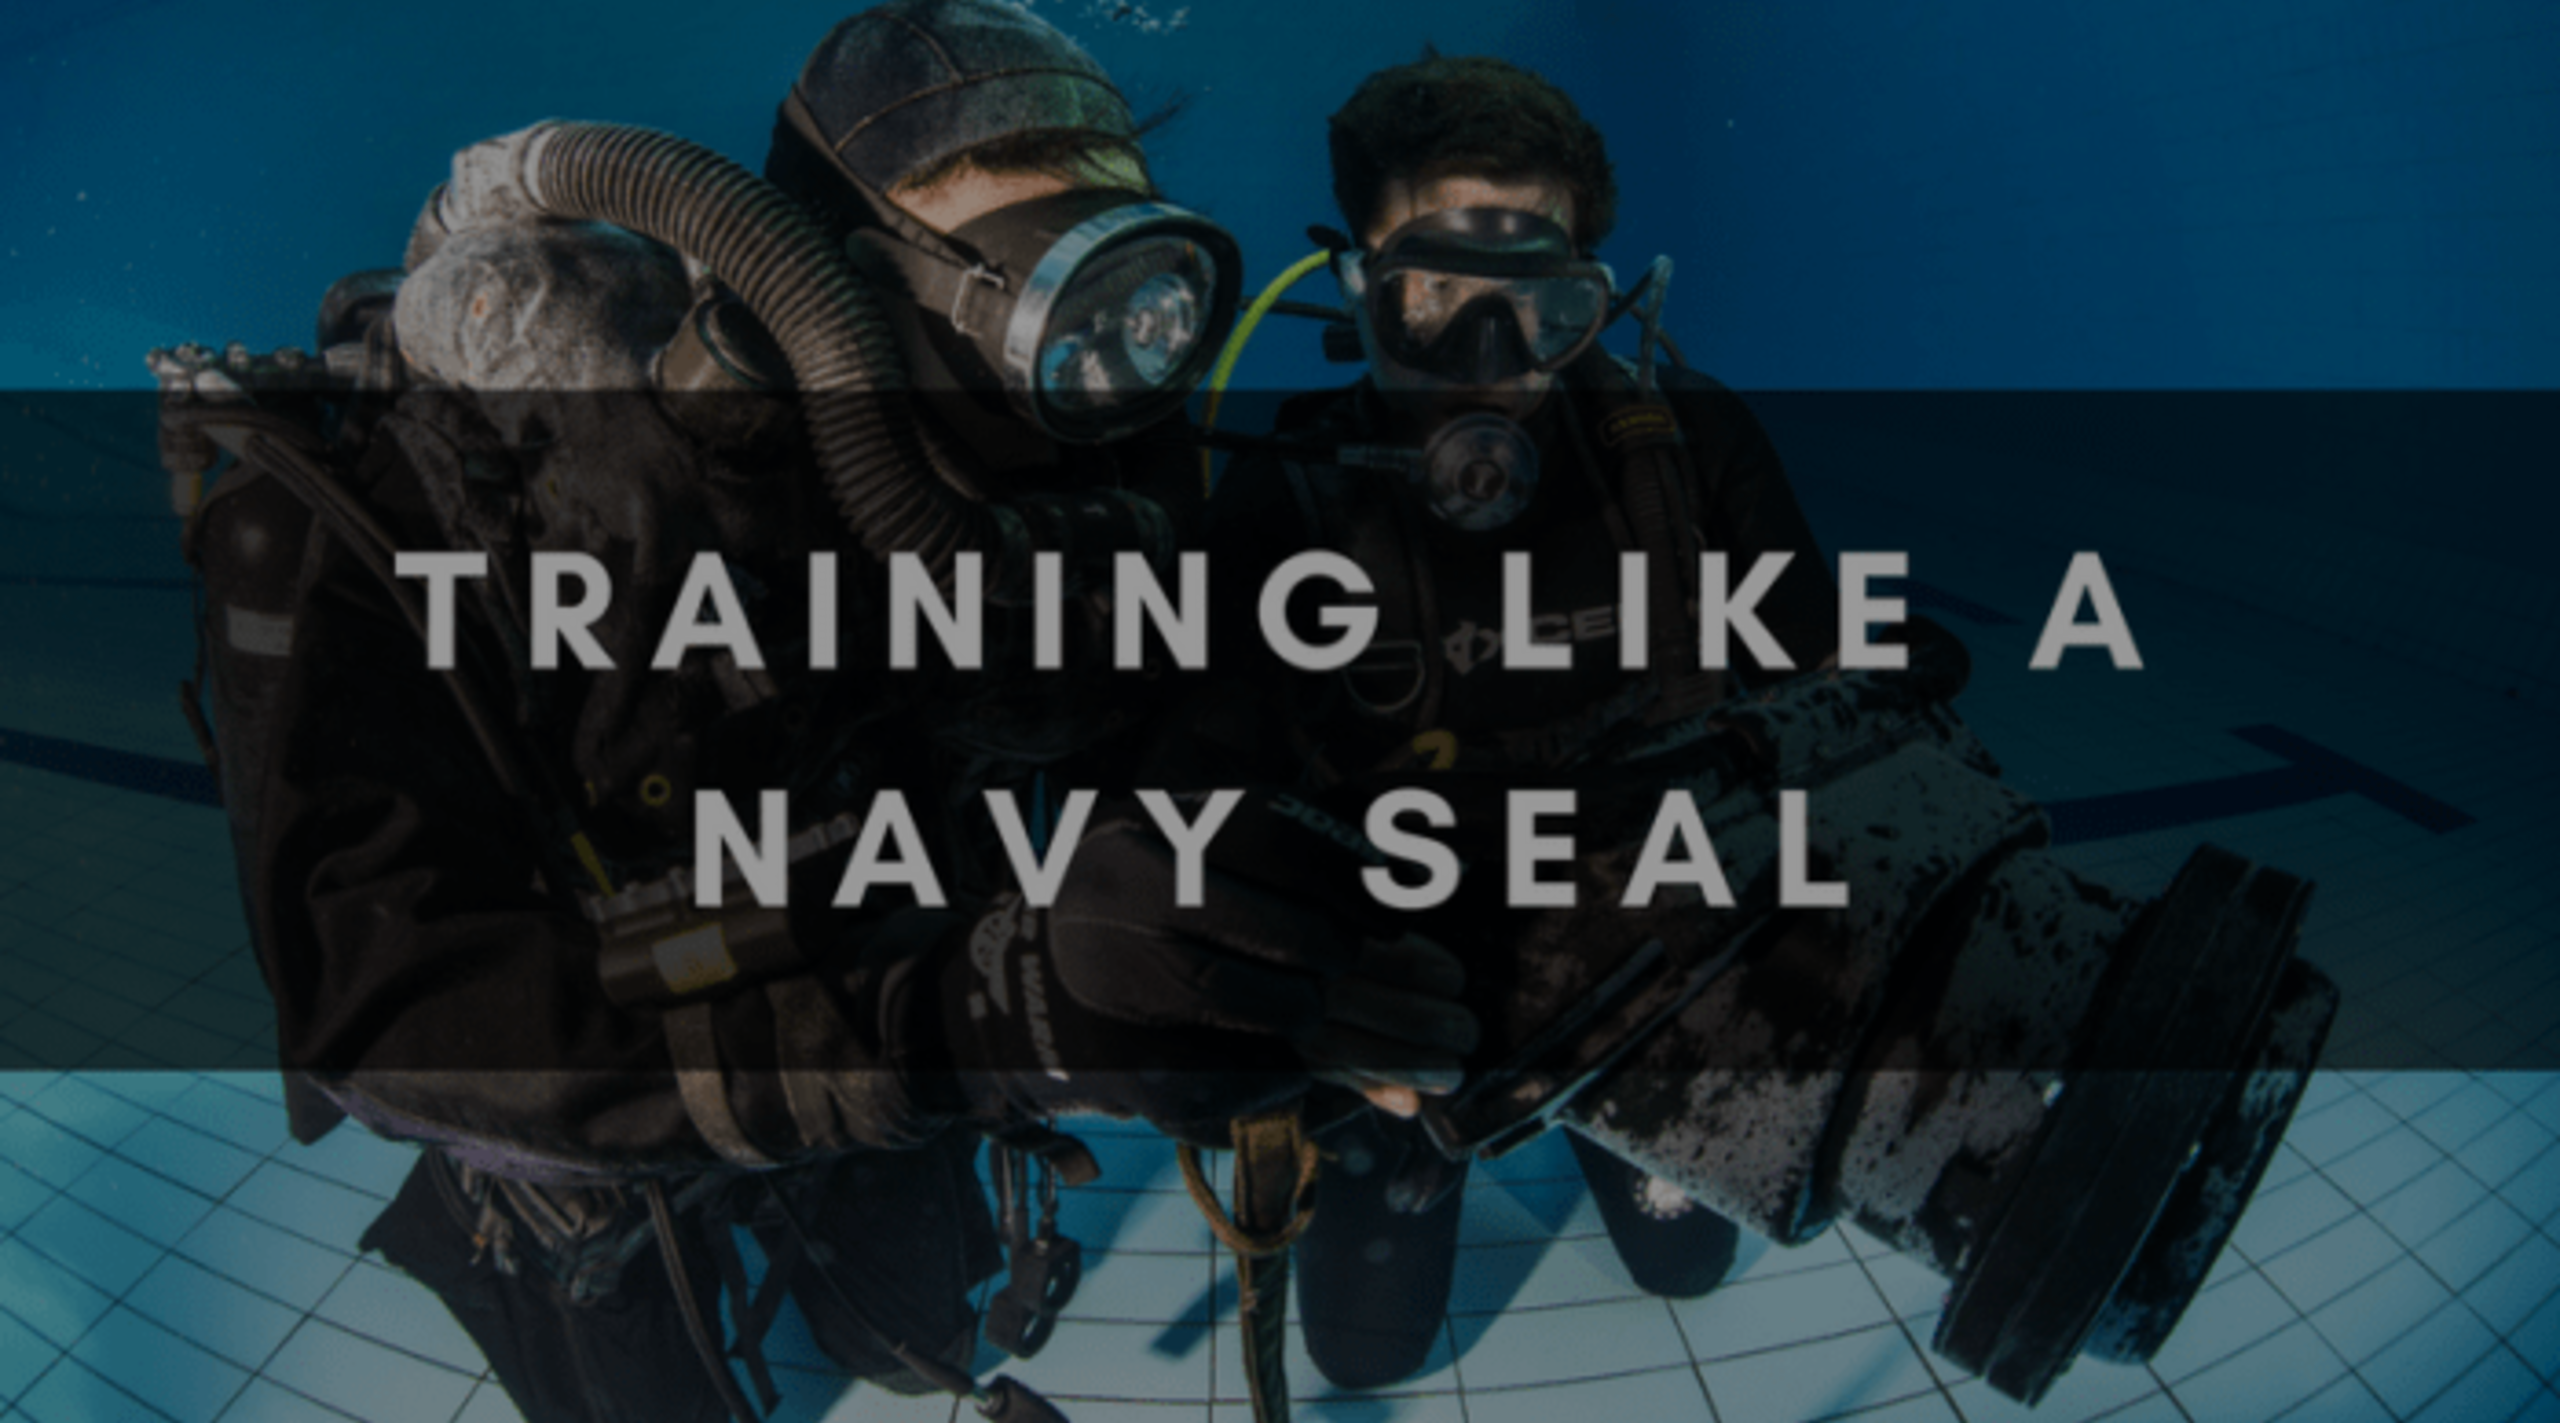 TRAINING LIKE A NAVY SEAL